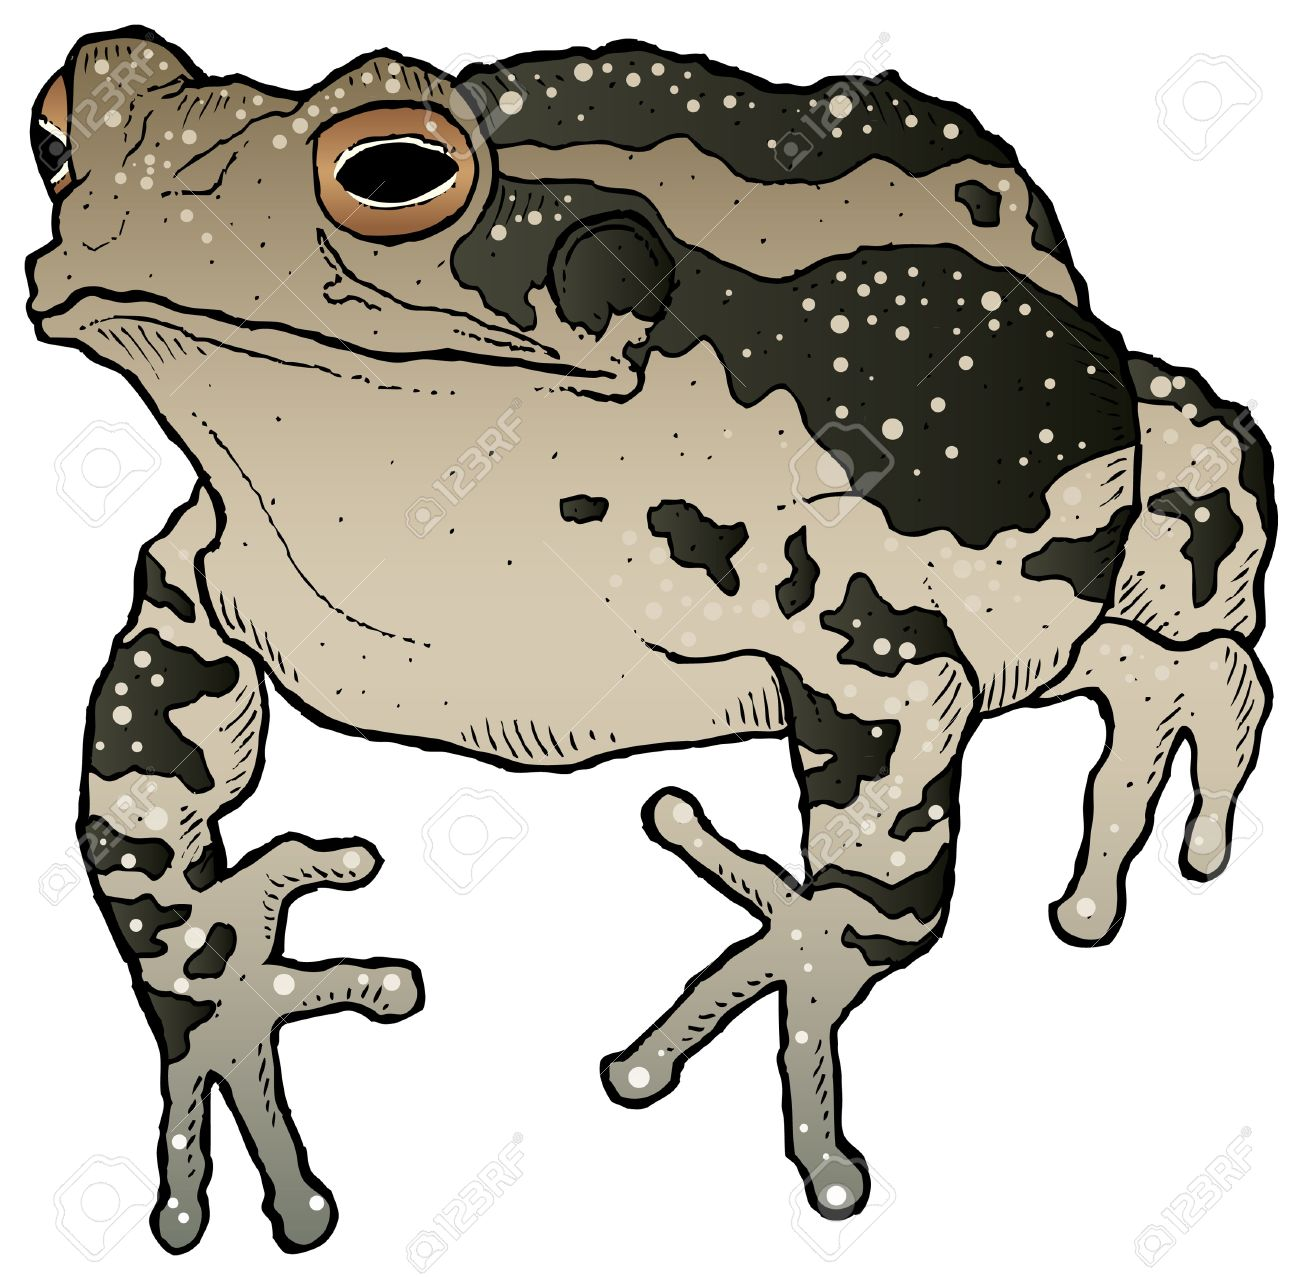 Toad clipart.